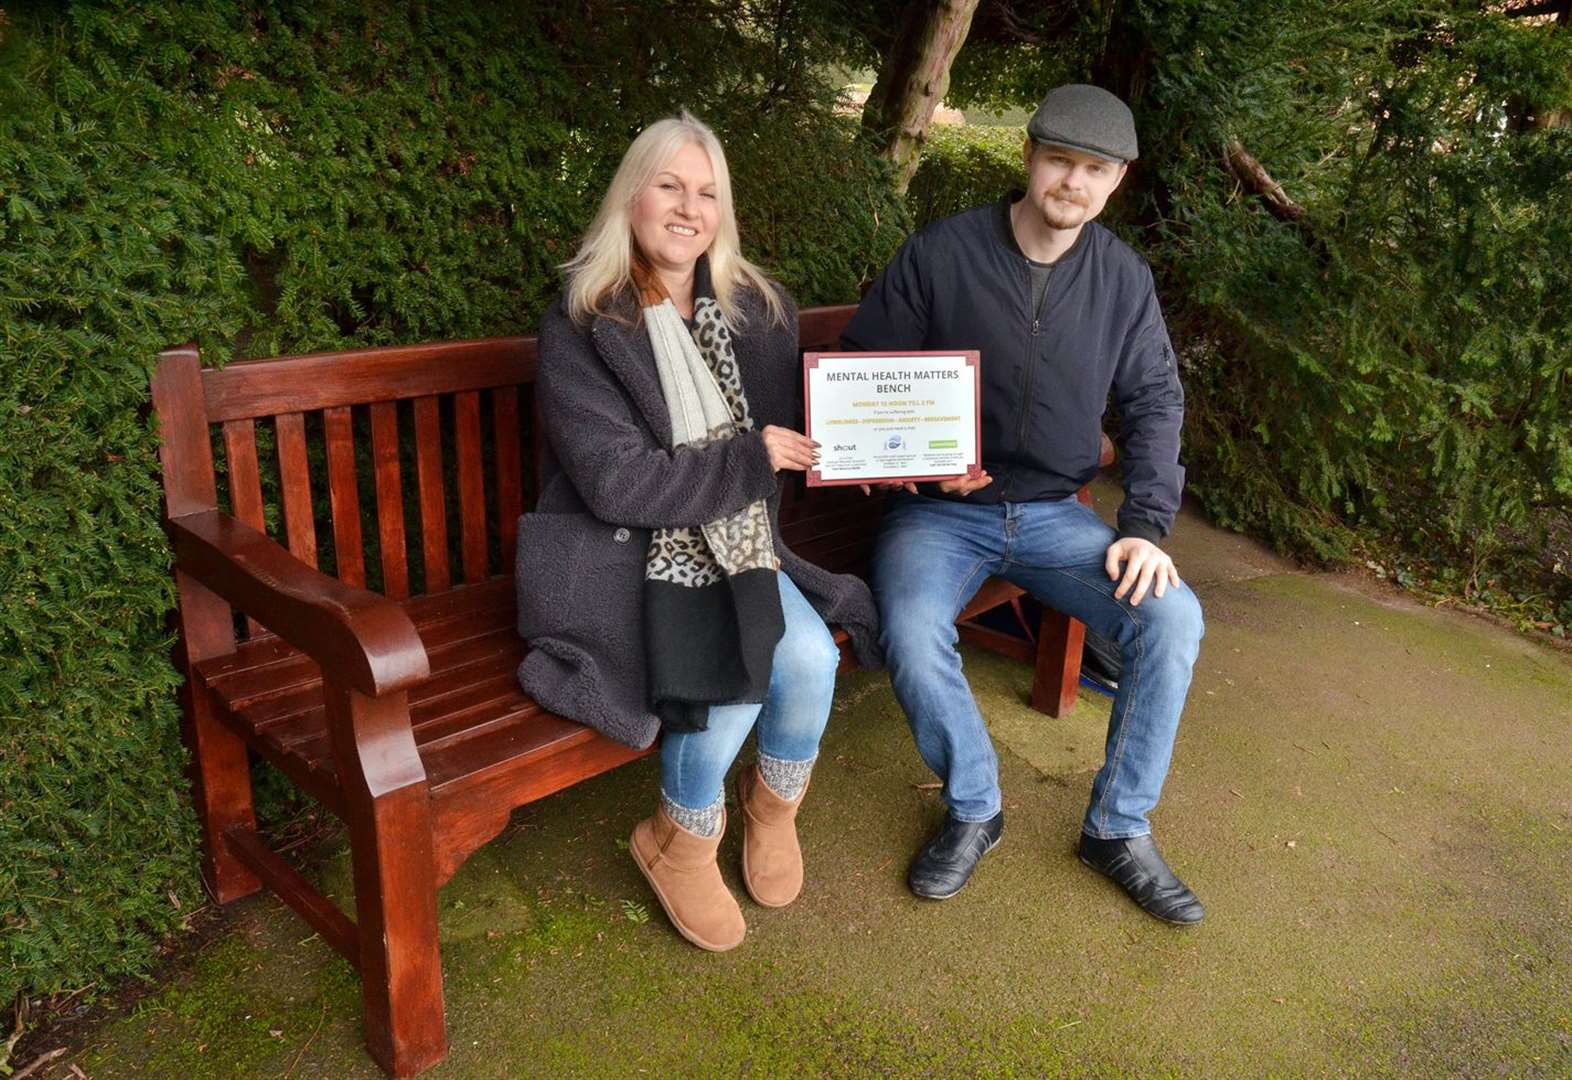 Bench in public gardens offers informal help for mental wellness